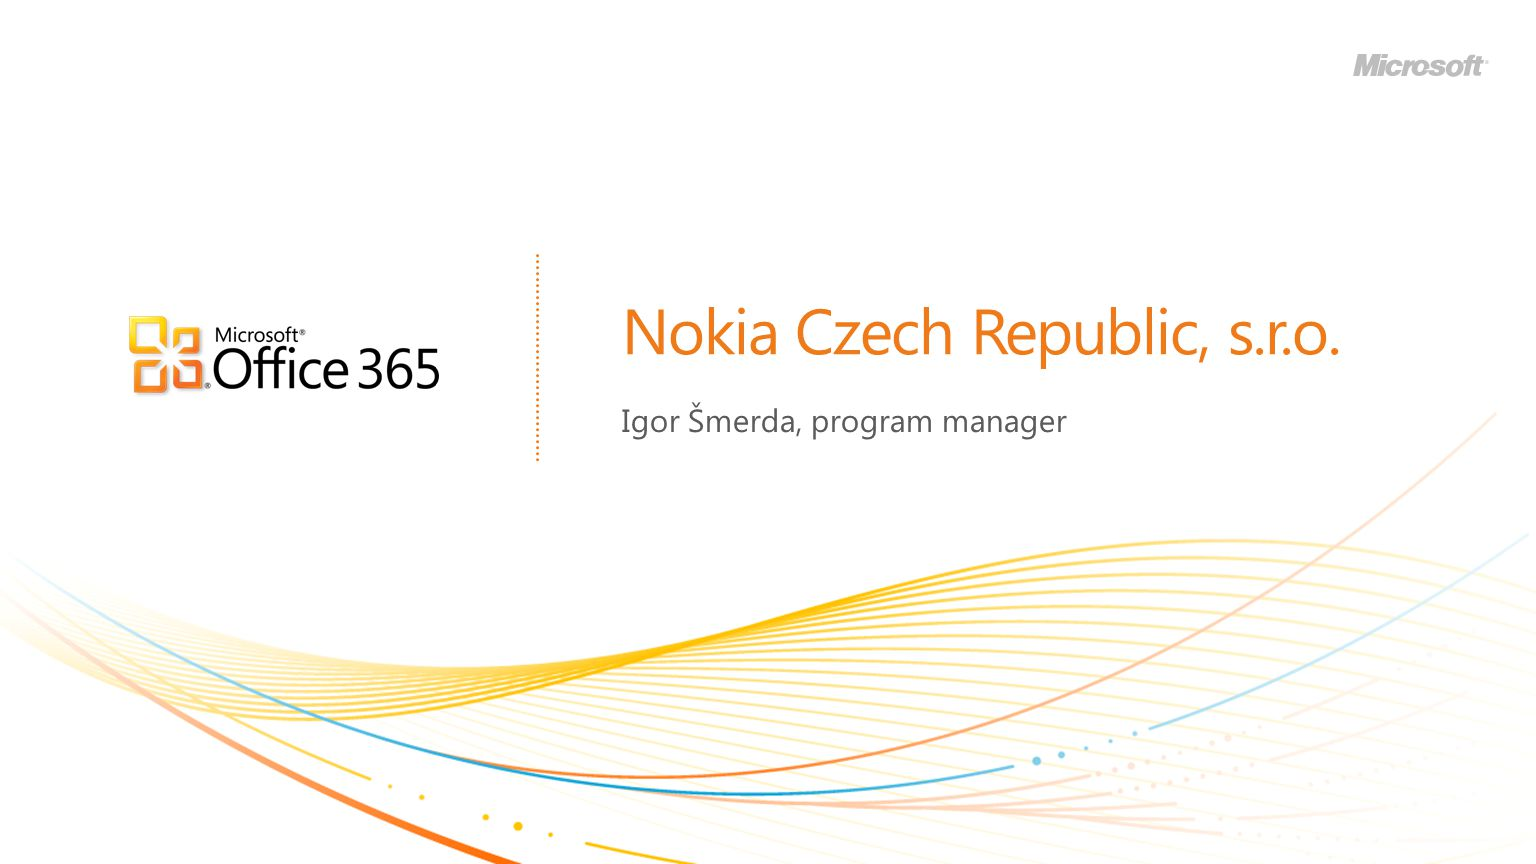 Nokia Czech Republic, s.r.o. Igor Šmerda, program manager